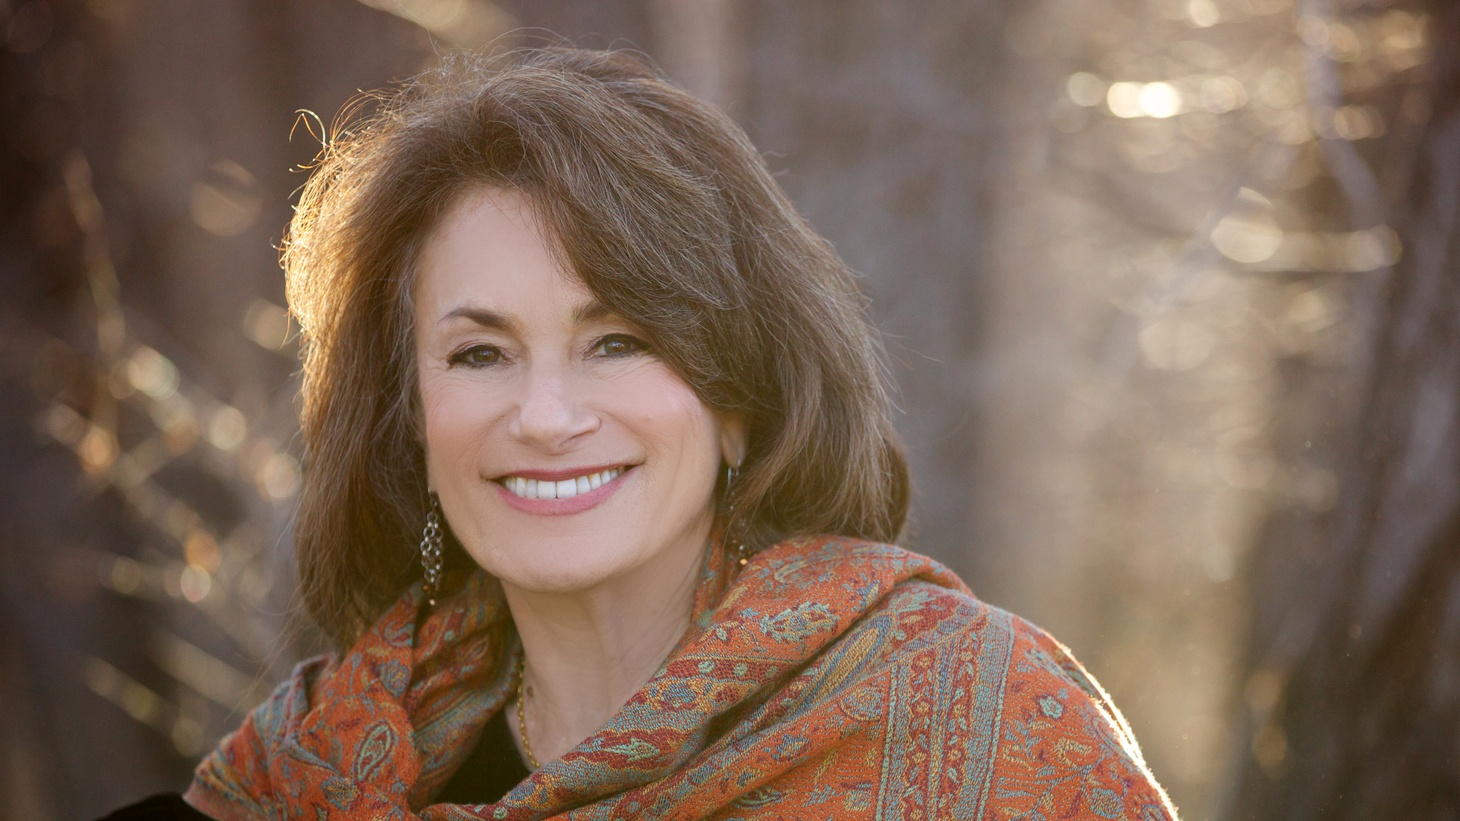 Rabbi Tirzah Firestone is a psychotherapist and author, who specializes in Jungian theory and is a leader in the international Jewish Renewal movement.